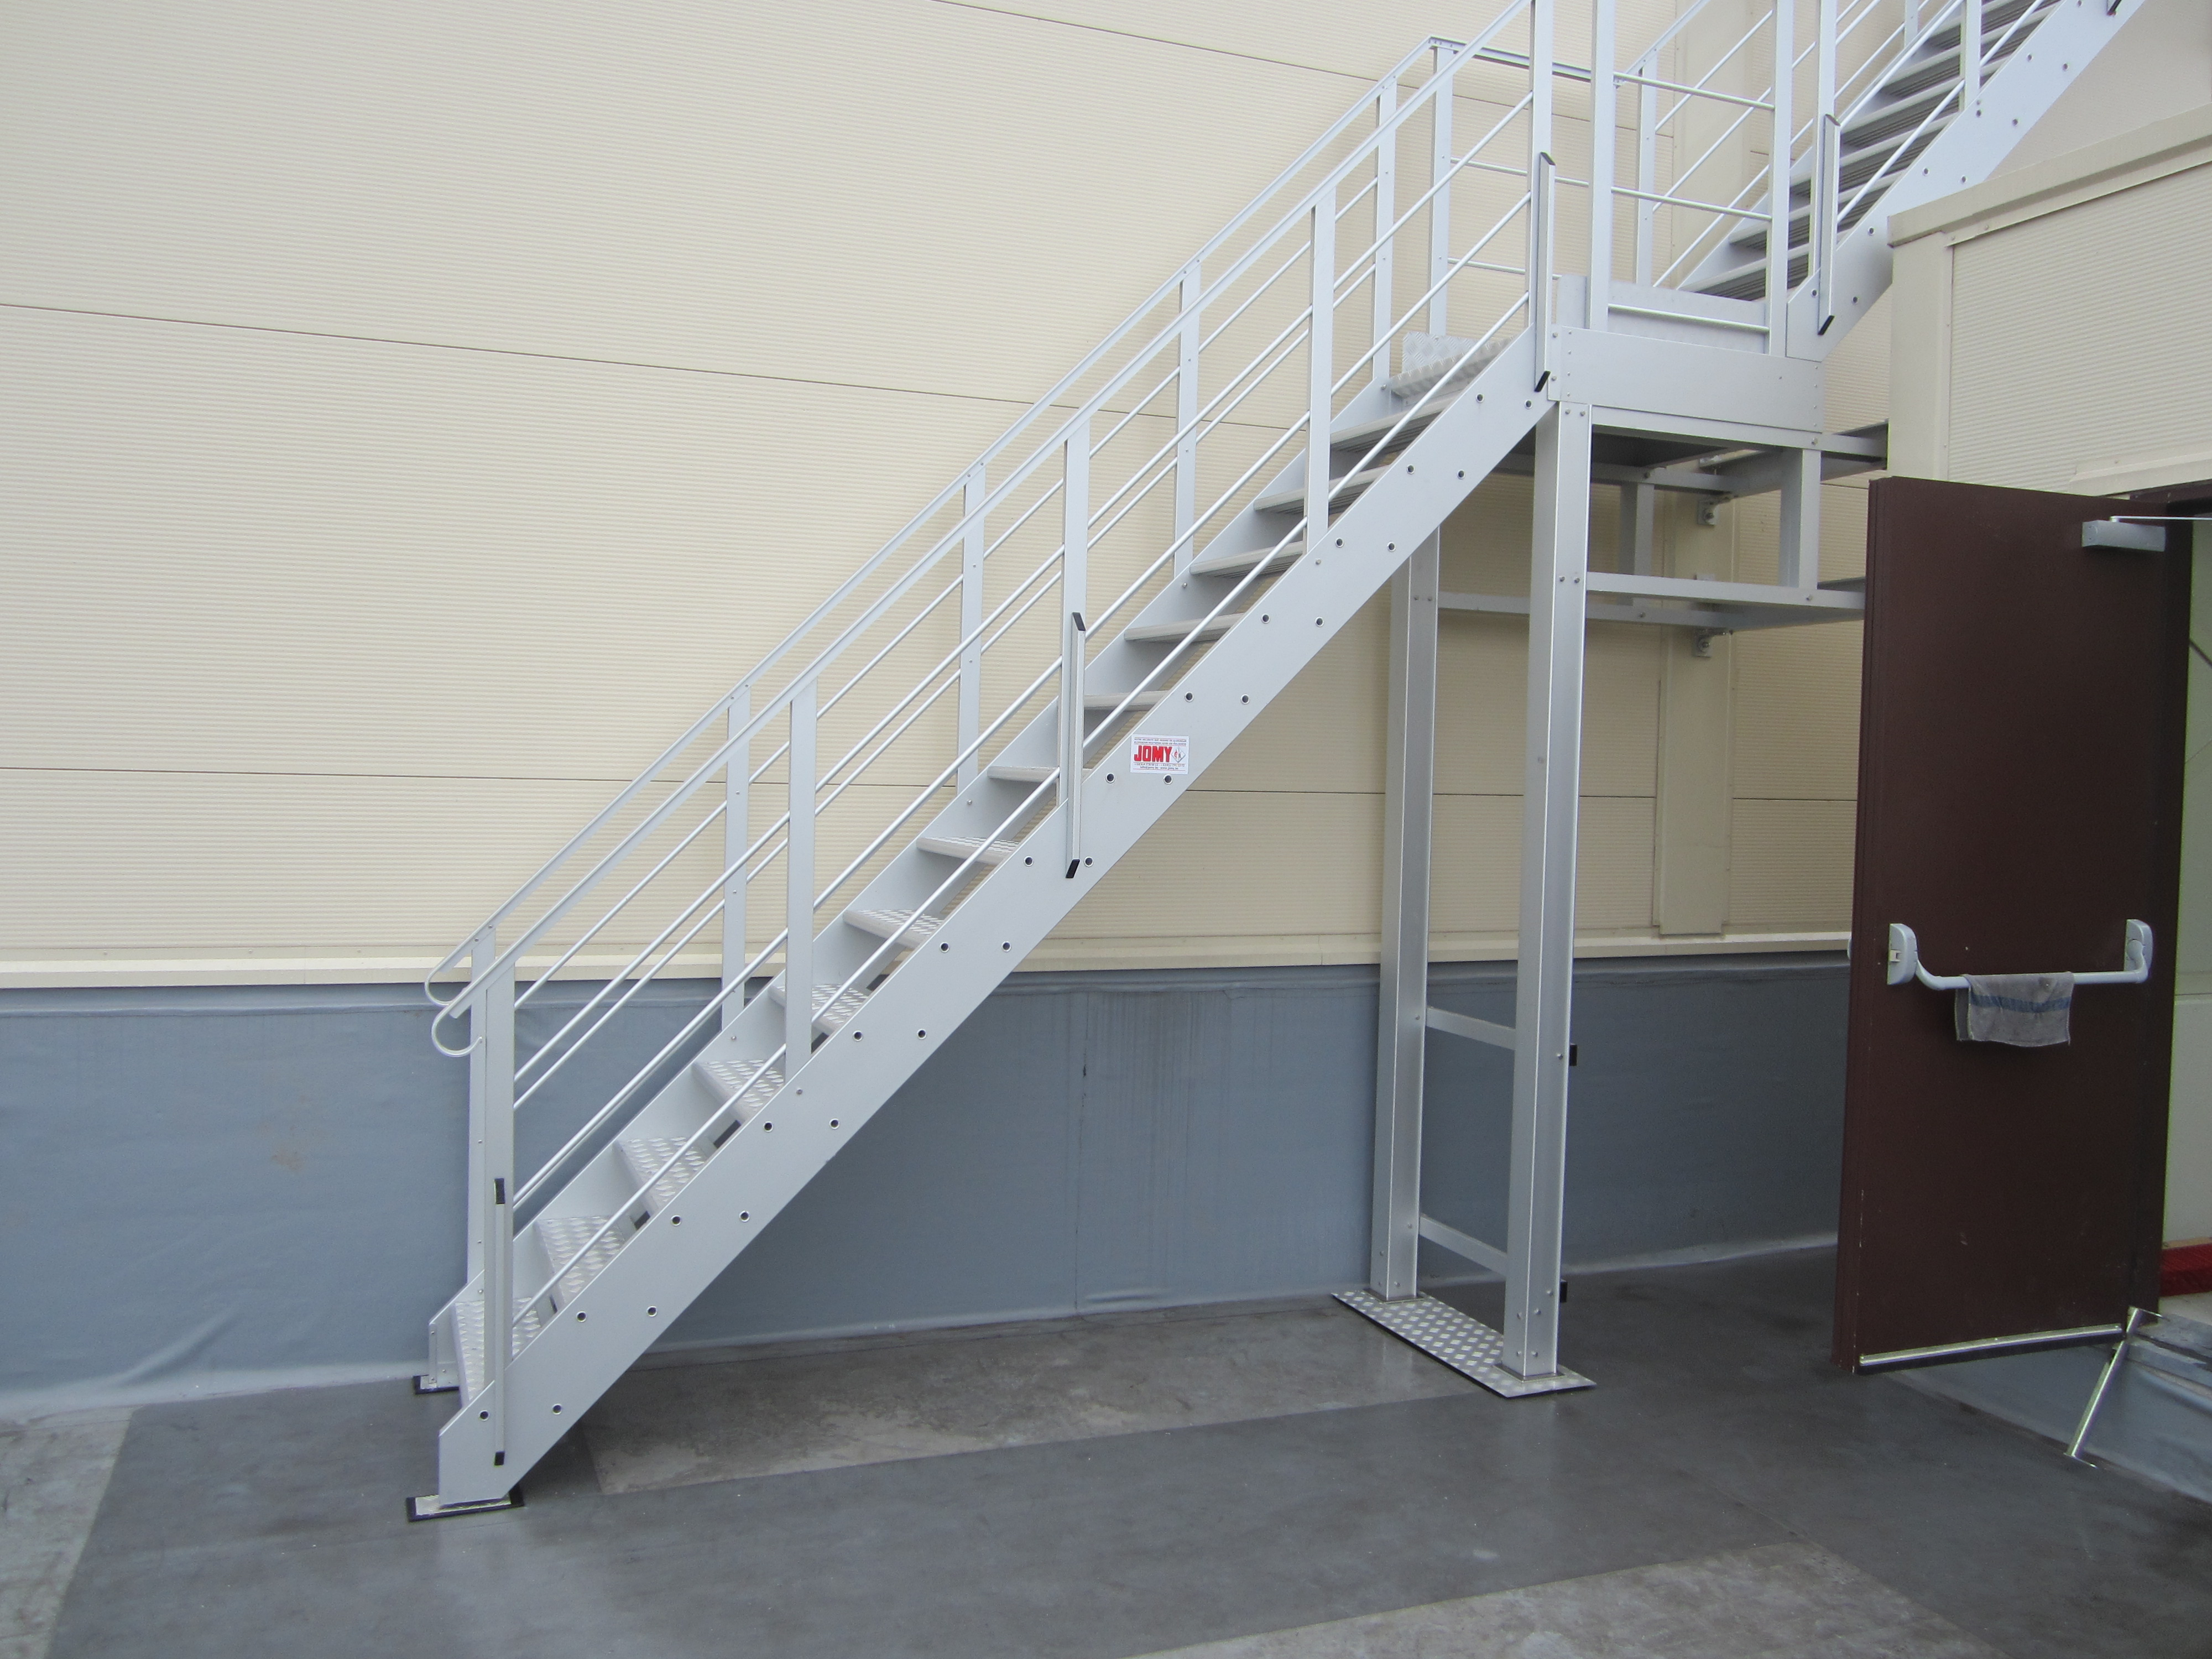 Differentes configurations pour les escaliers d'evacuation sont disponibles